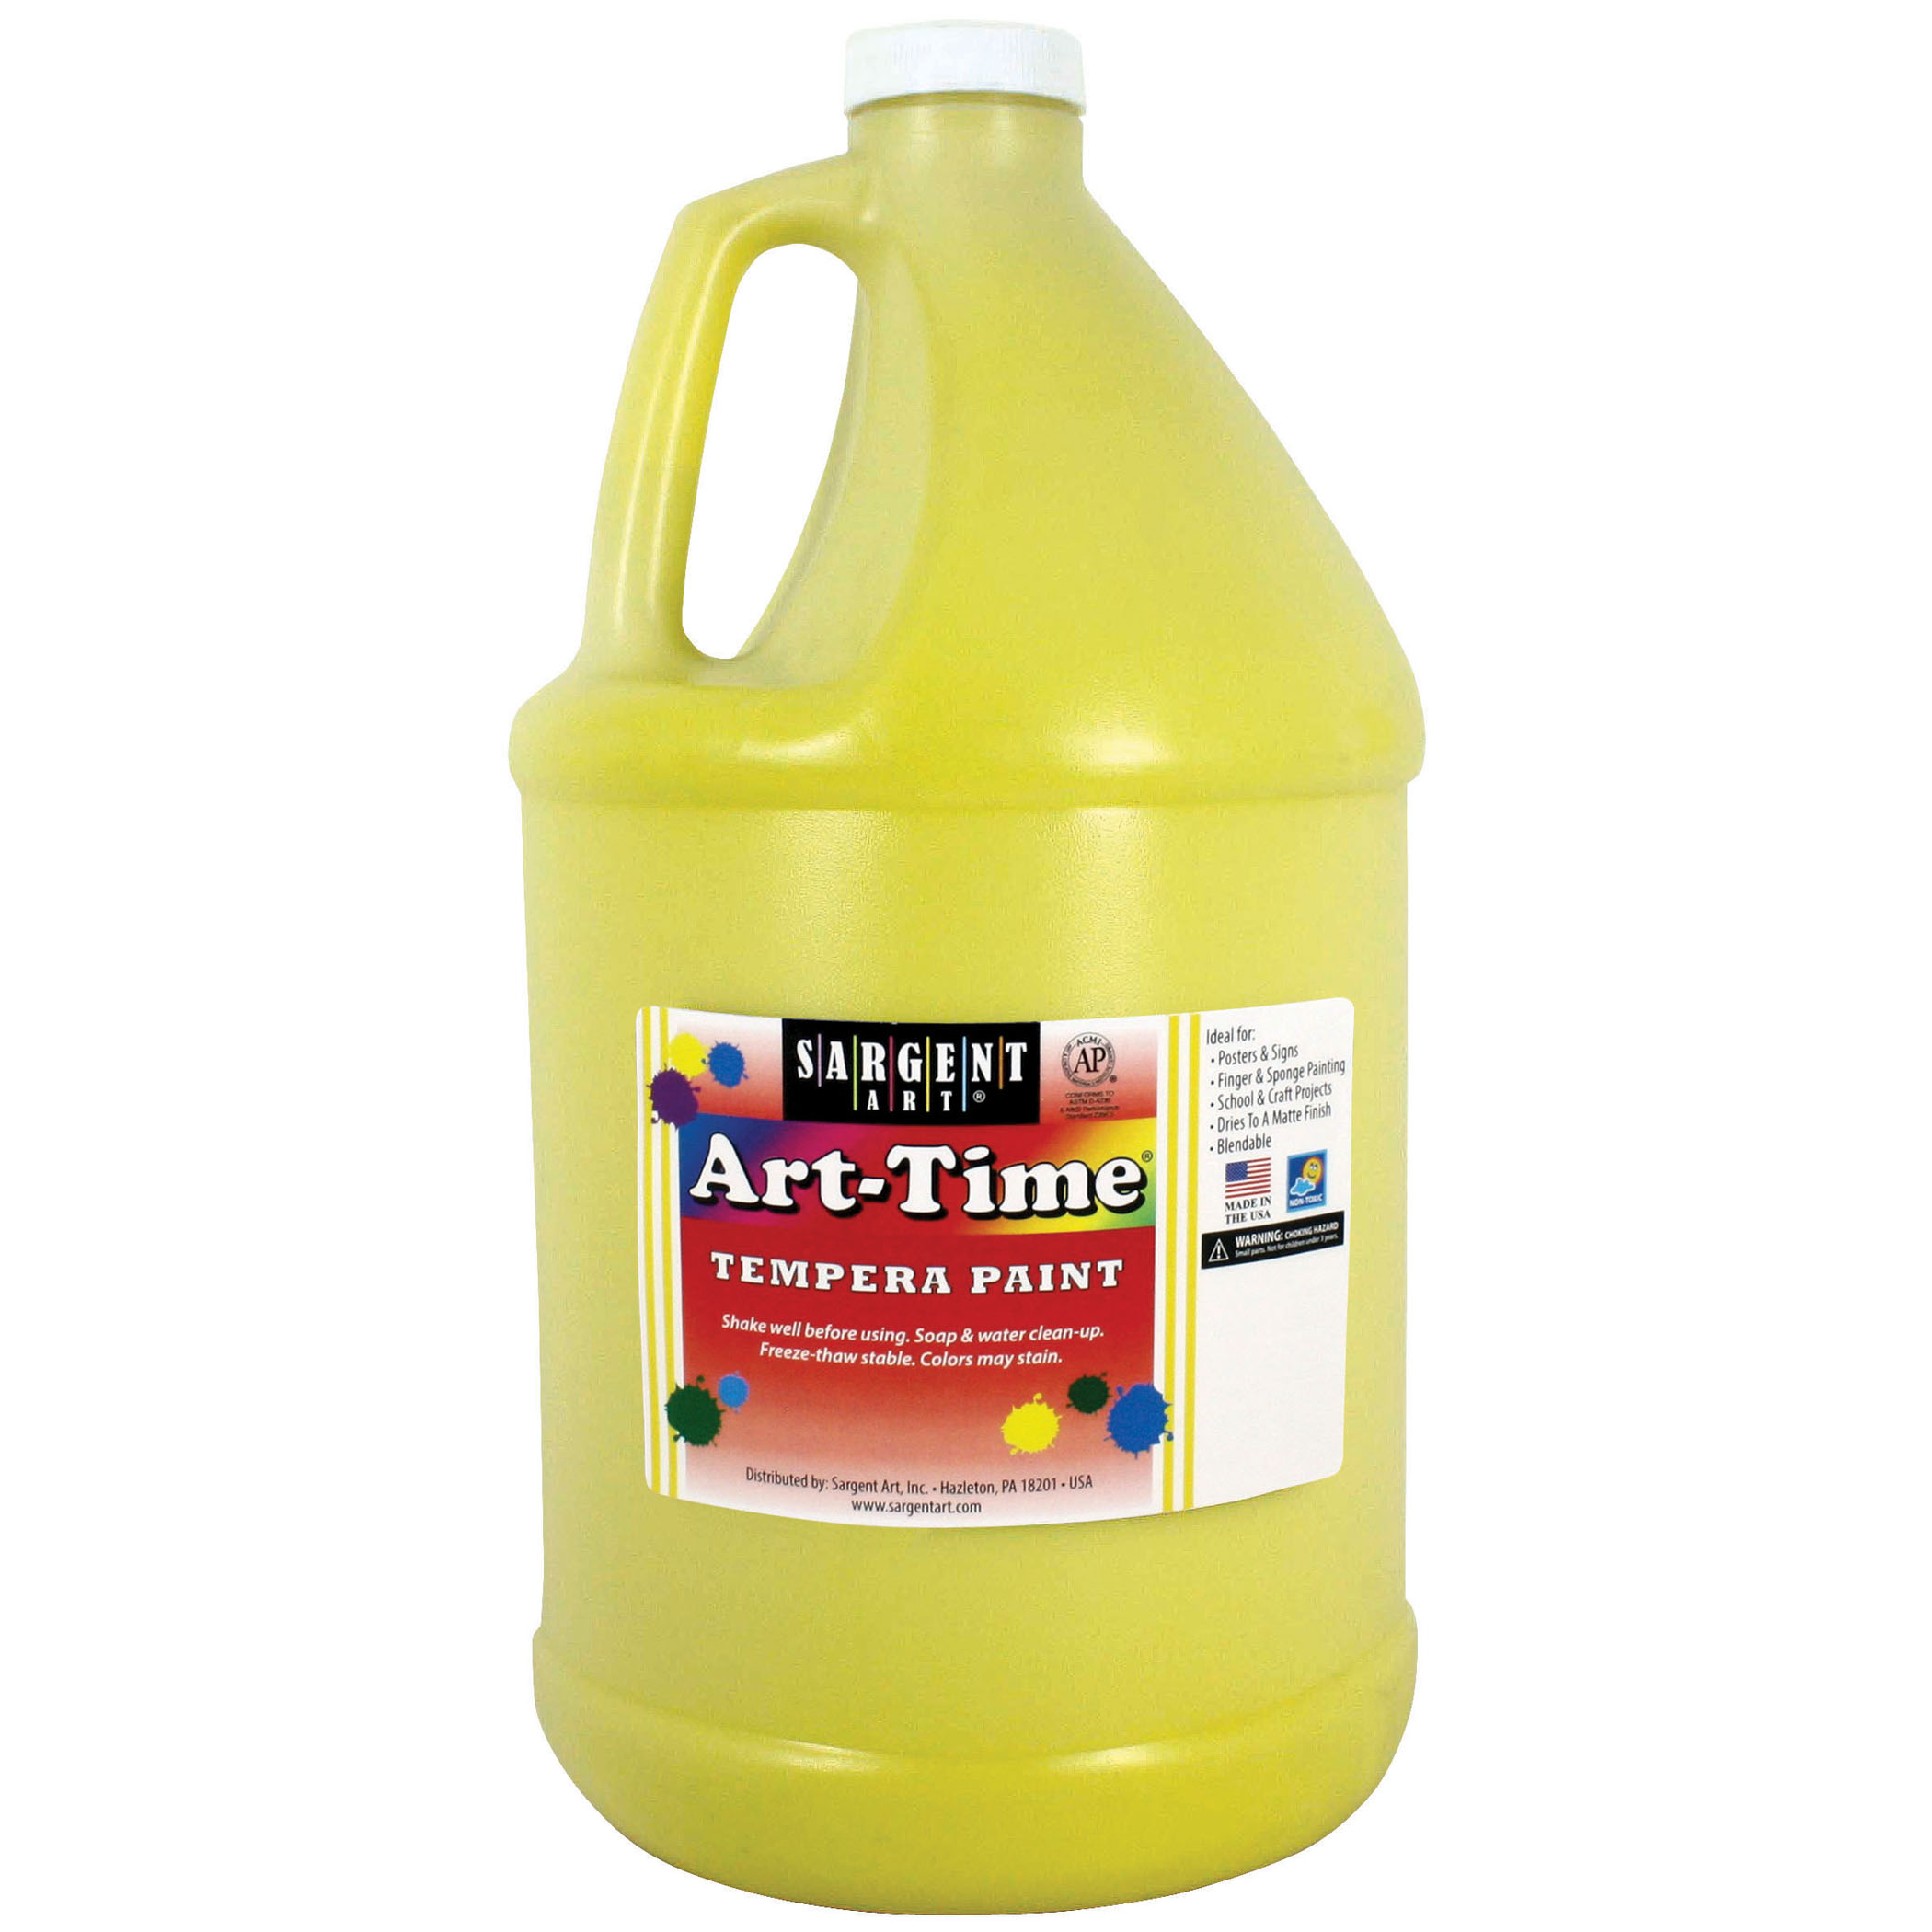 Art-Time® Tempera Paint, Yellow - Gallon